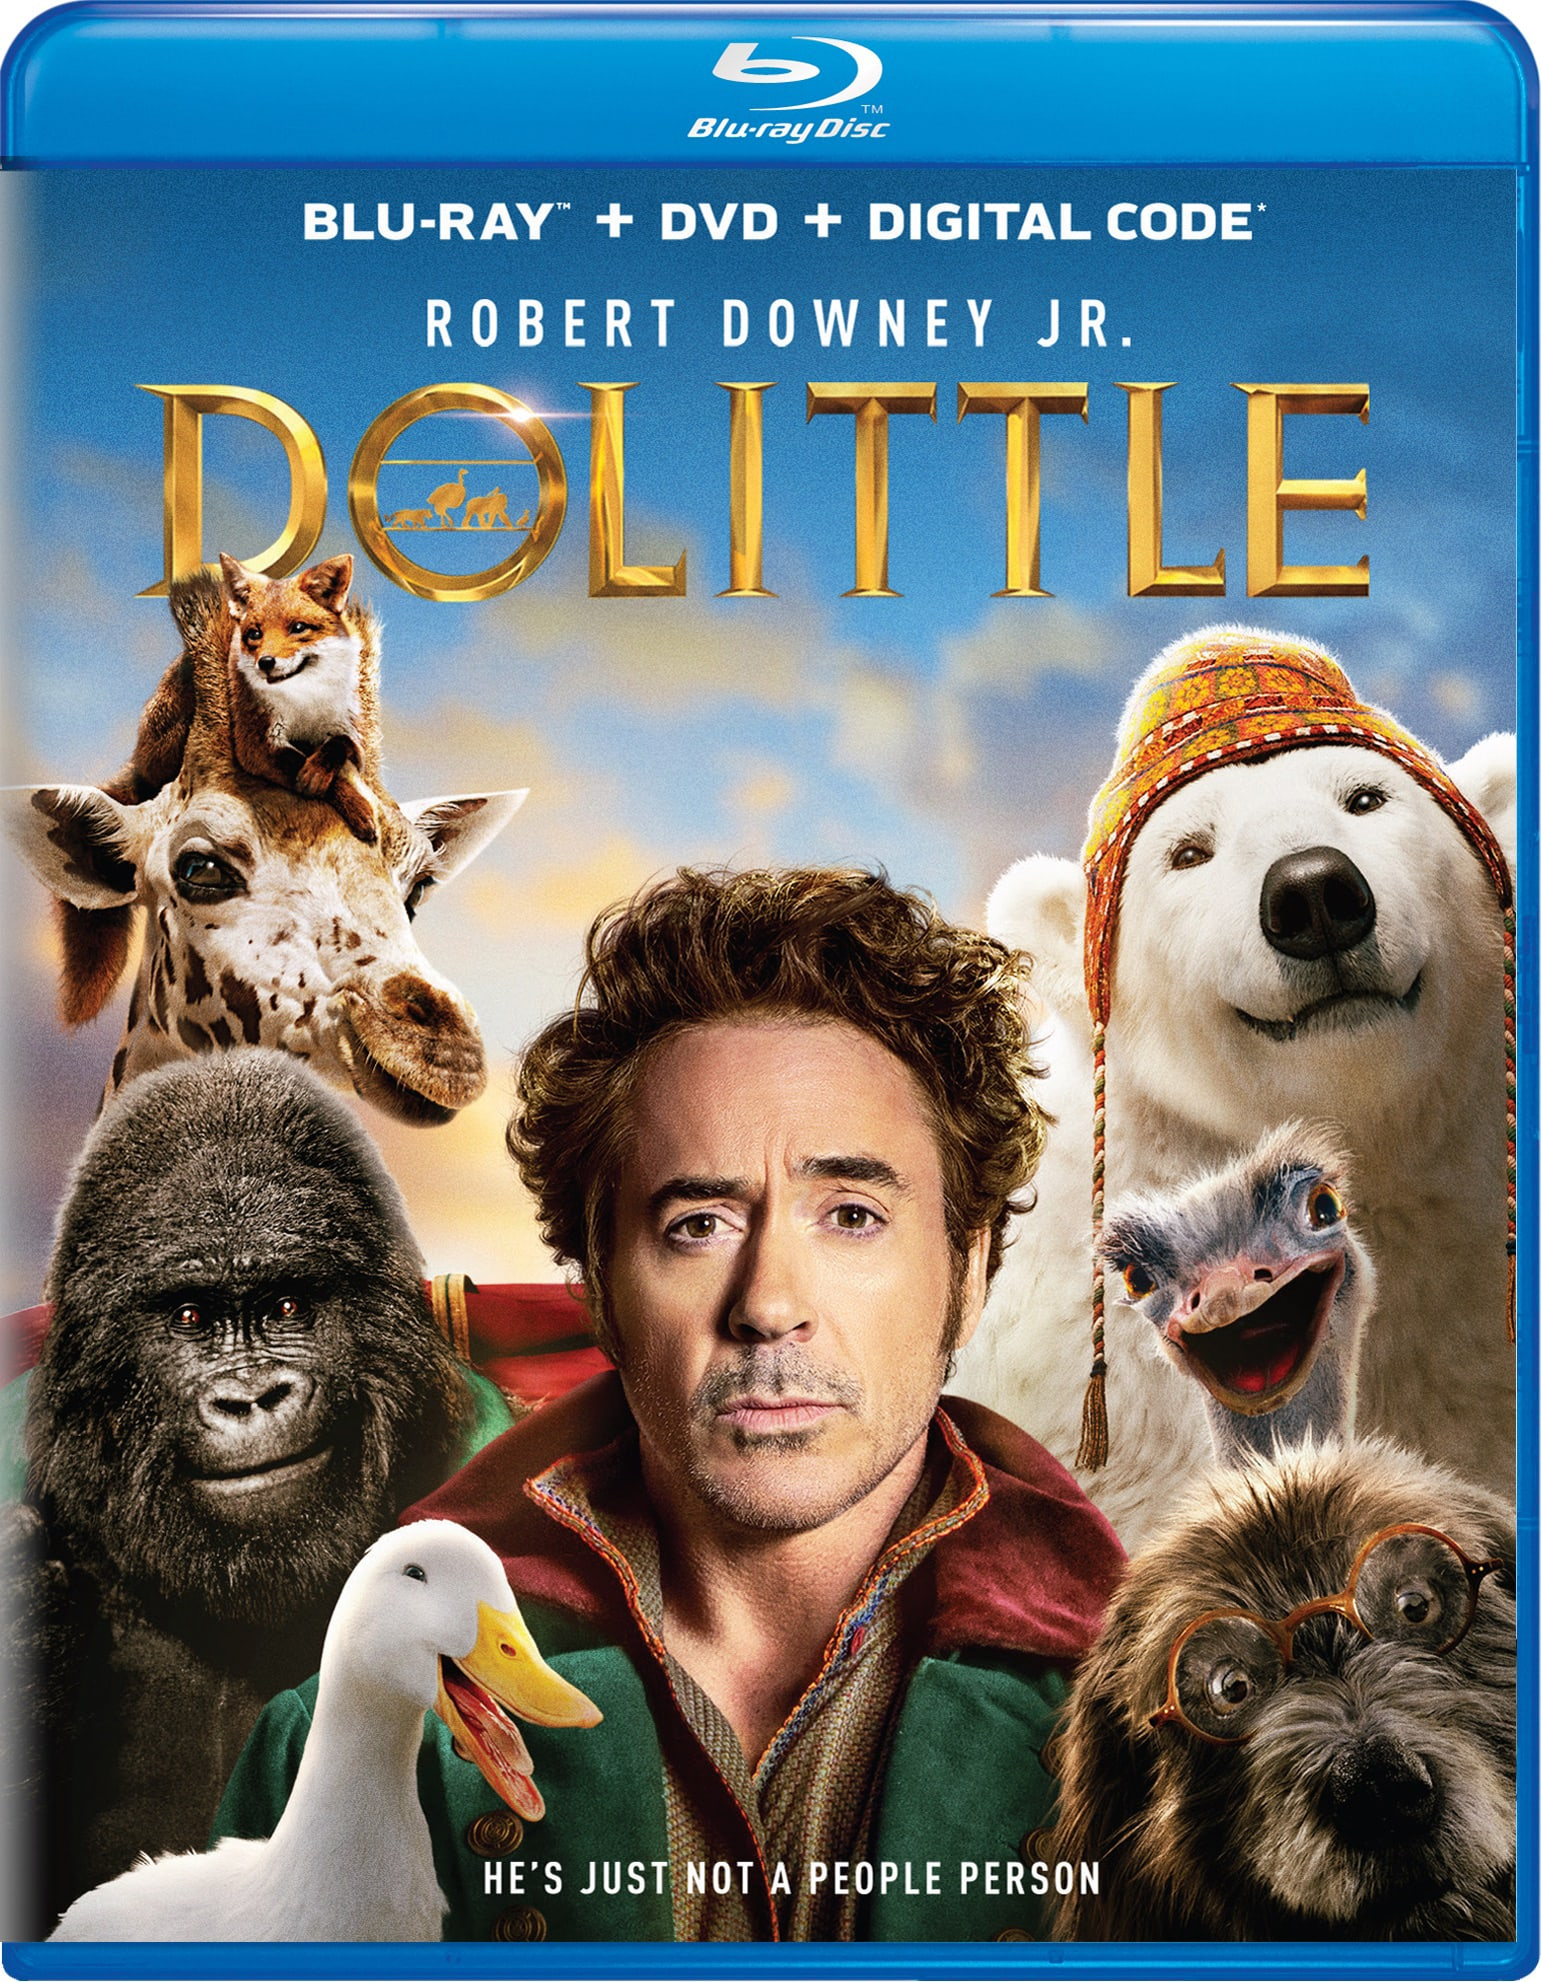 Dolittle (DVD + Digital) [Blu-ray]